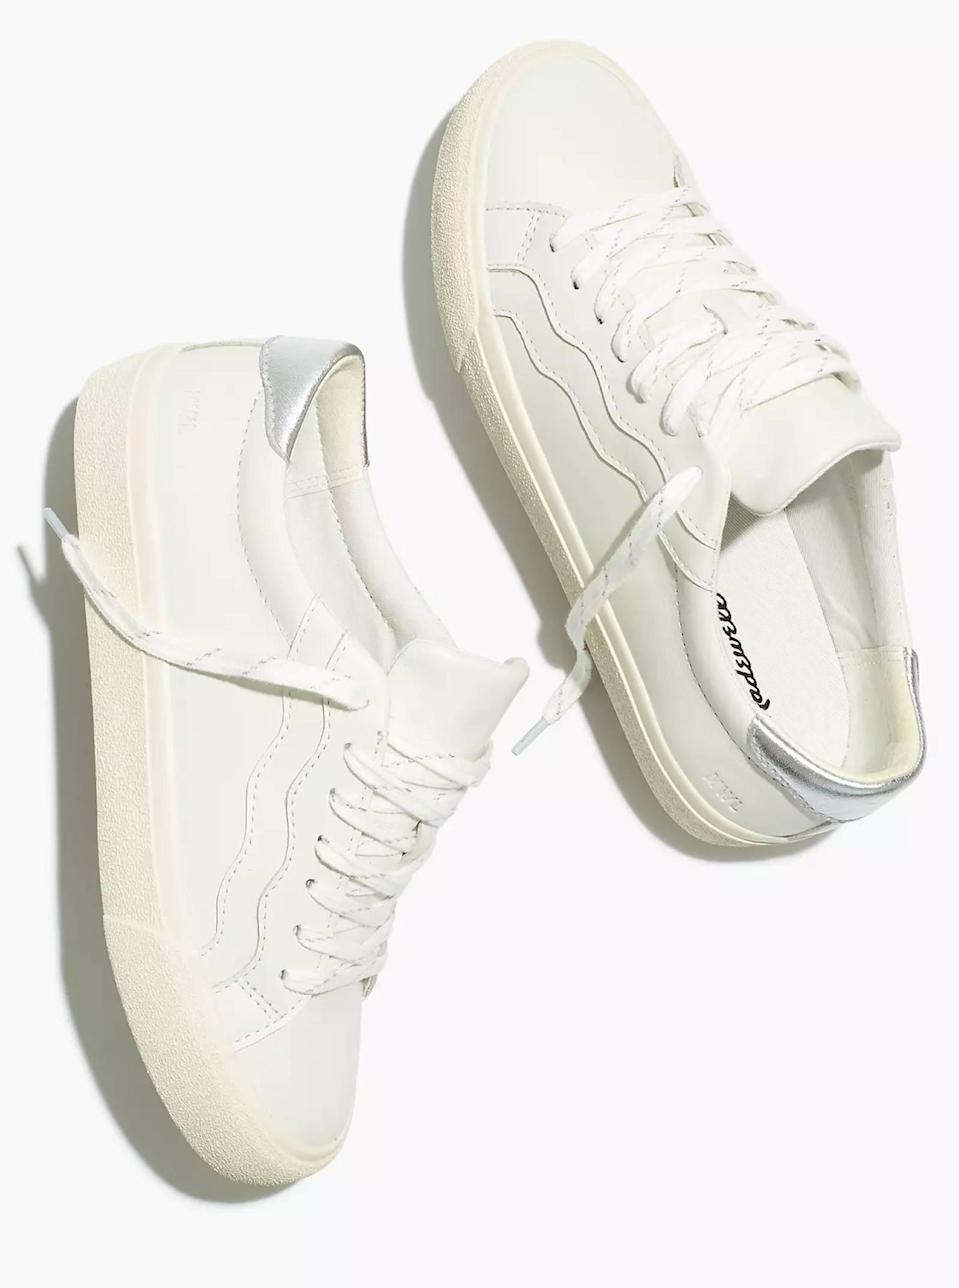 """White sneakers are on the list of <a href=""""https://www.glamour.com/gallery/10-wardrobe-essentials-every-woman-should-own?mbid=synd_yahoo_rss"""" rel=""""nofollow noopener"""" target=""""_blank"""" data-ylk=""""slk:wardrobe essentials"""" class=""""link rapid-noclick-resp"""">wardrobe essentials</a> everyone should own, but we especially like this pair for the playful squiggles along the profile. $88, Madewell. <a href=""""https://www.madewell.com/sidewalk-low-top-sneakers-in-leather-wave-edition-MC711.html?"""" rel=""""nofollow noopener"""" target=""""_blank"""" data-ylk=""""slk:Get it now!"""" class=""""link rapid-noclick-resp"""">Get it now!</a>"""